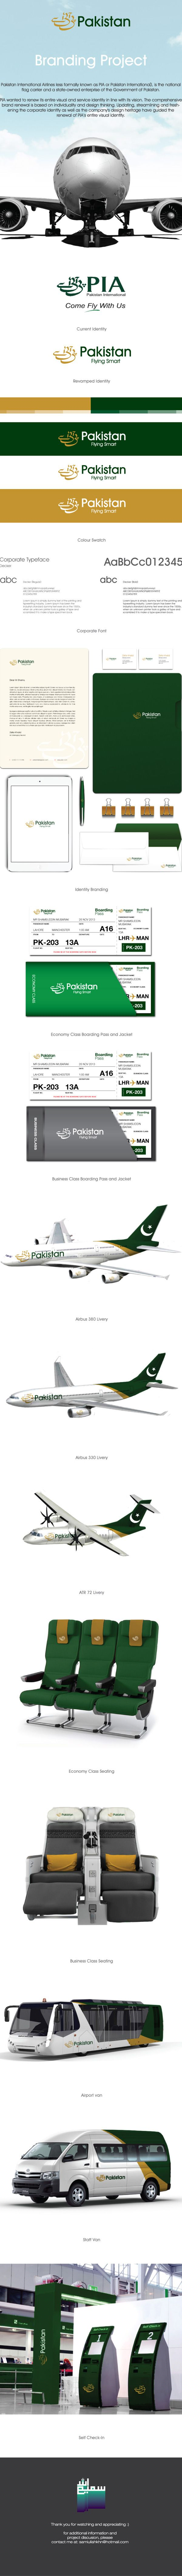 Pakistan International Airlines less formally known as PIA or Pakistan International), is the national flag carrier and a state-owned enterprise of the Government of Pakistan.PIA wanted to renew its entire visual and service identity in line with its vi…